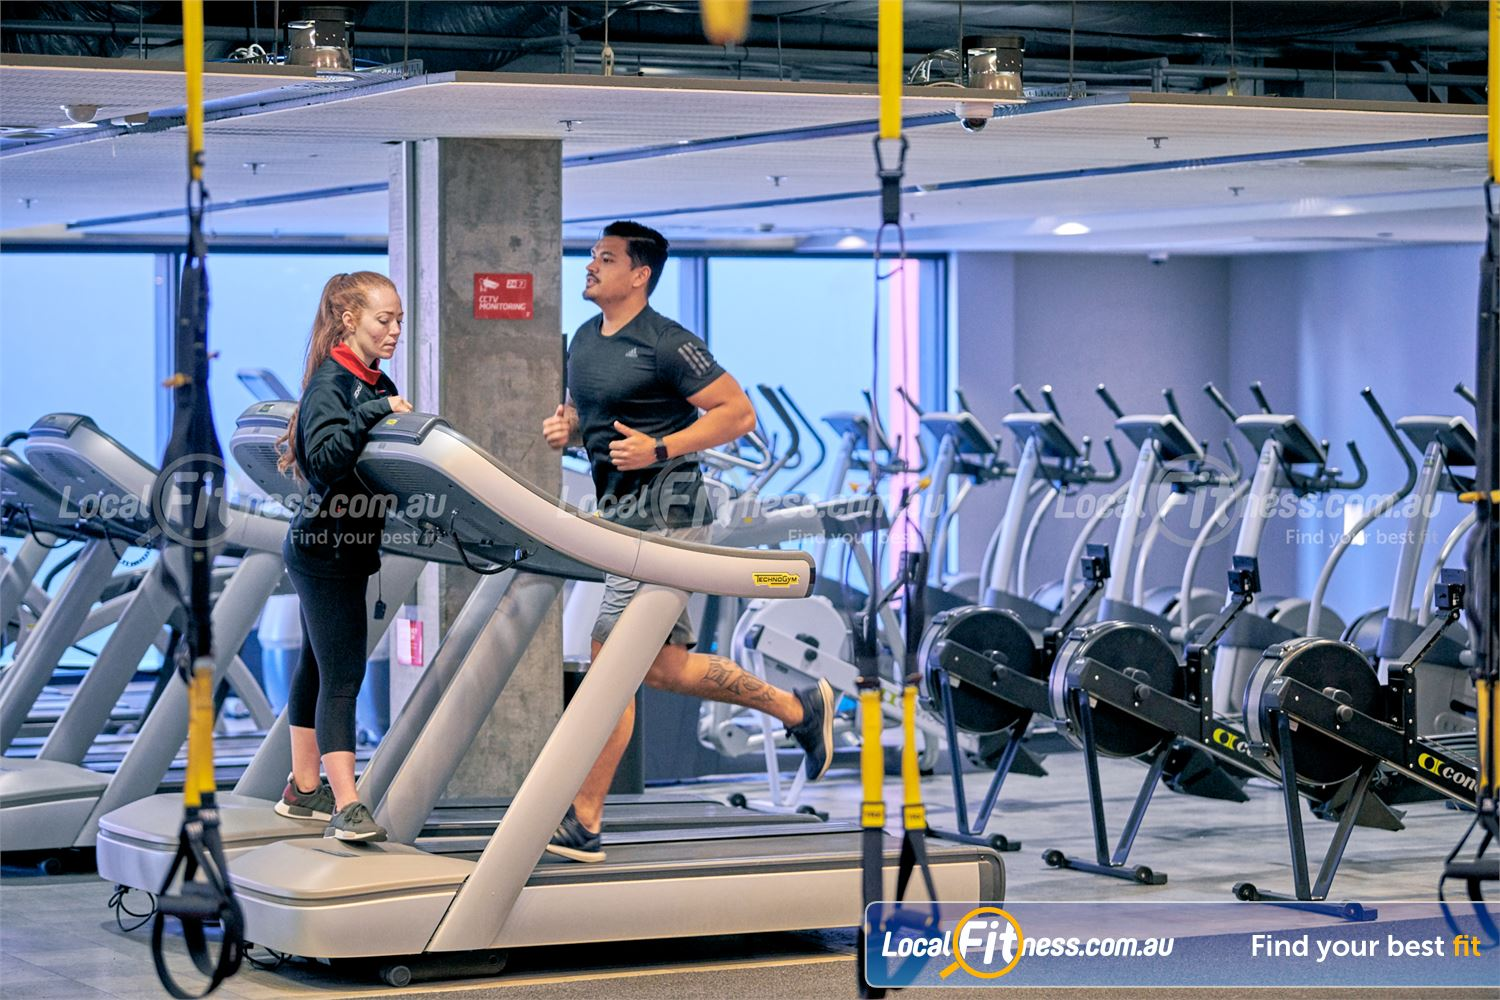 Fitness First Canberra City Near Capital Hill Our Canberra gym includes a state of the art cardio theatre.